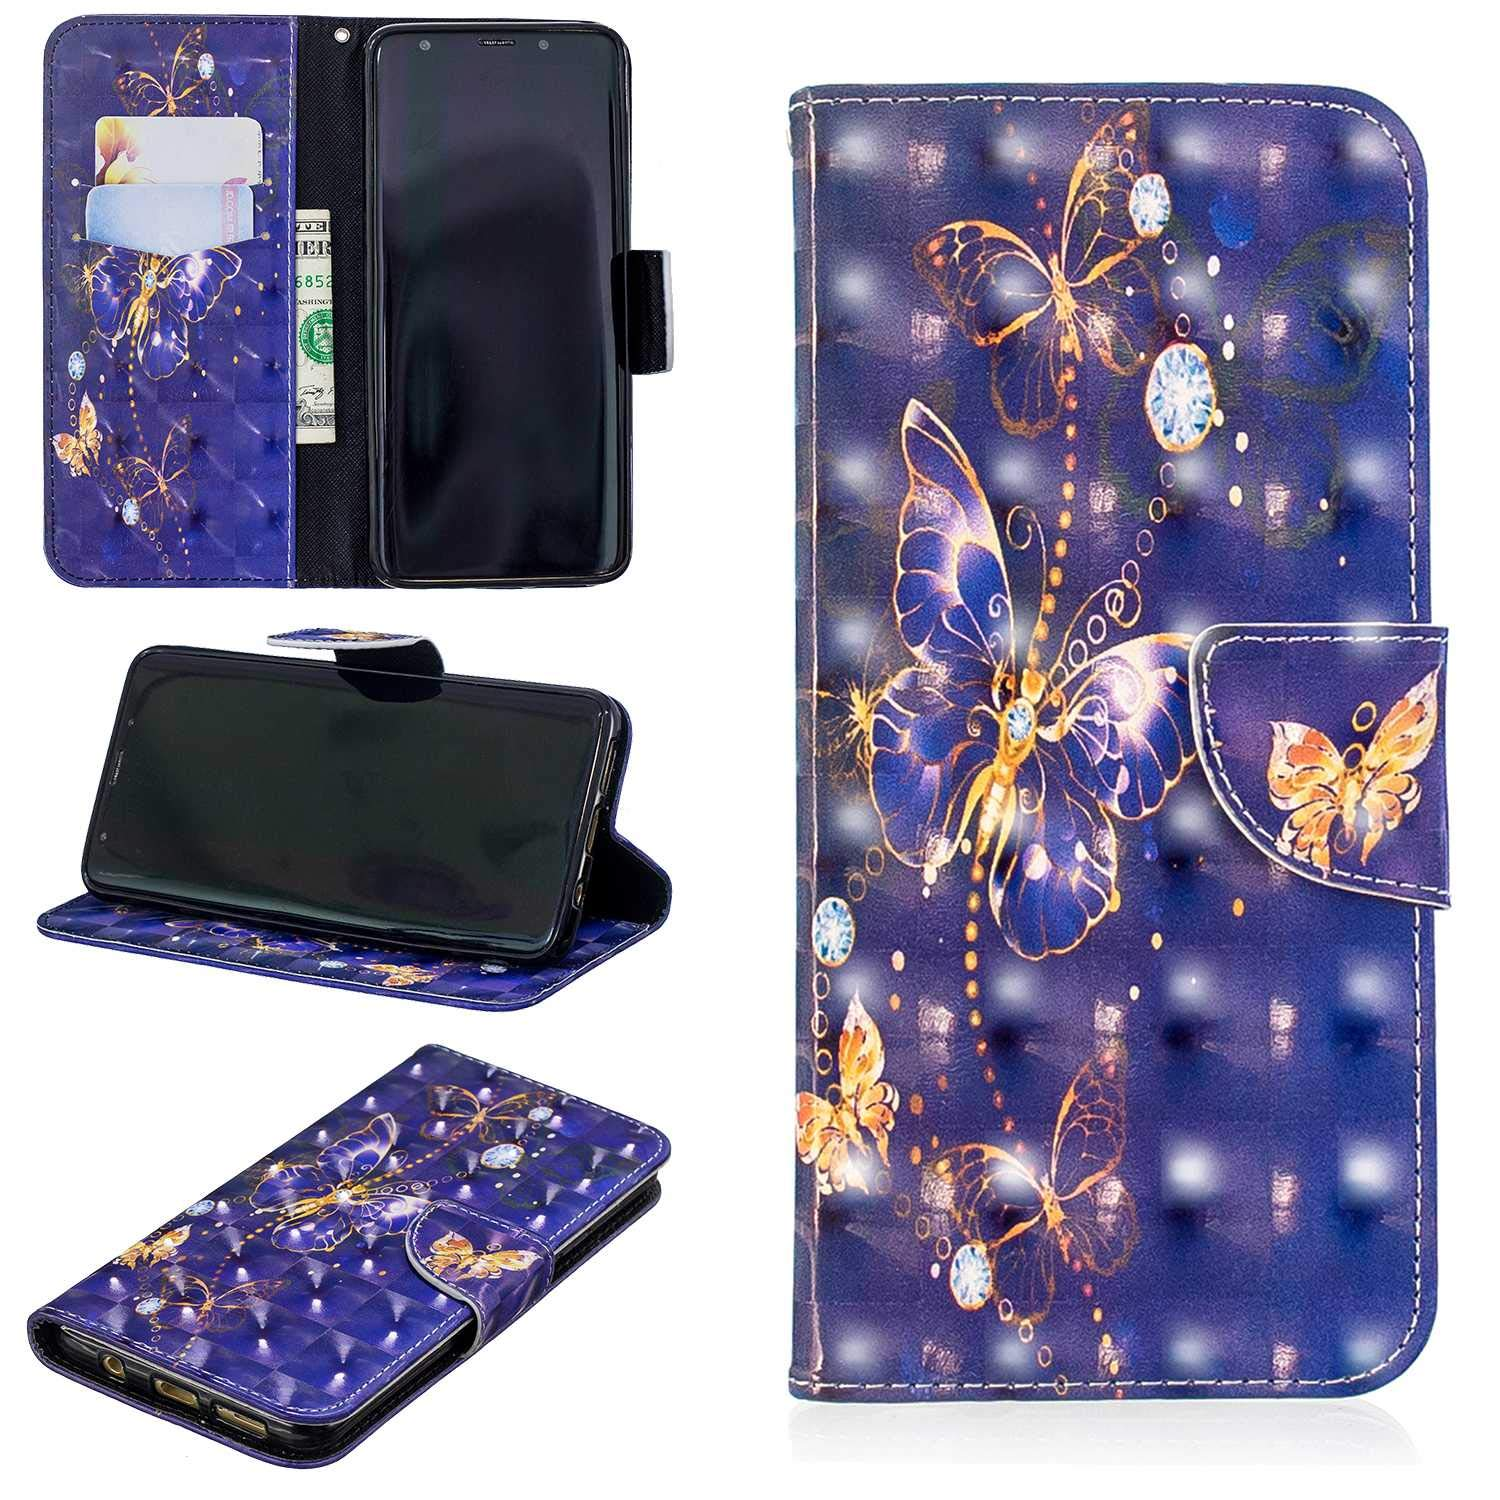 CUSKING Galaxy S9 Plus Case, Premium 3D Design Wallet Case Stand Flip Case with Card Holders and Magnetic Closure, Multi-Functional Shockproof Case for Samsung Galaxy S9 Plus - Purple, Butterfly